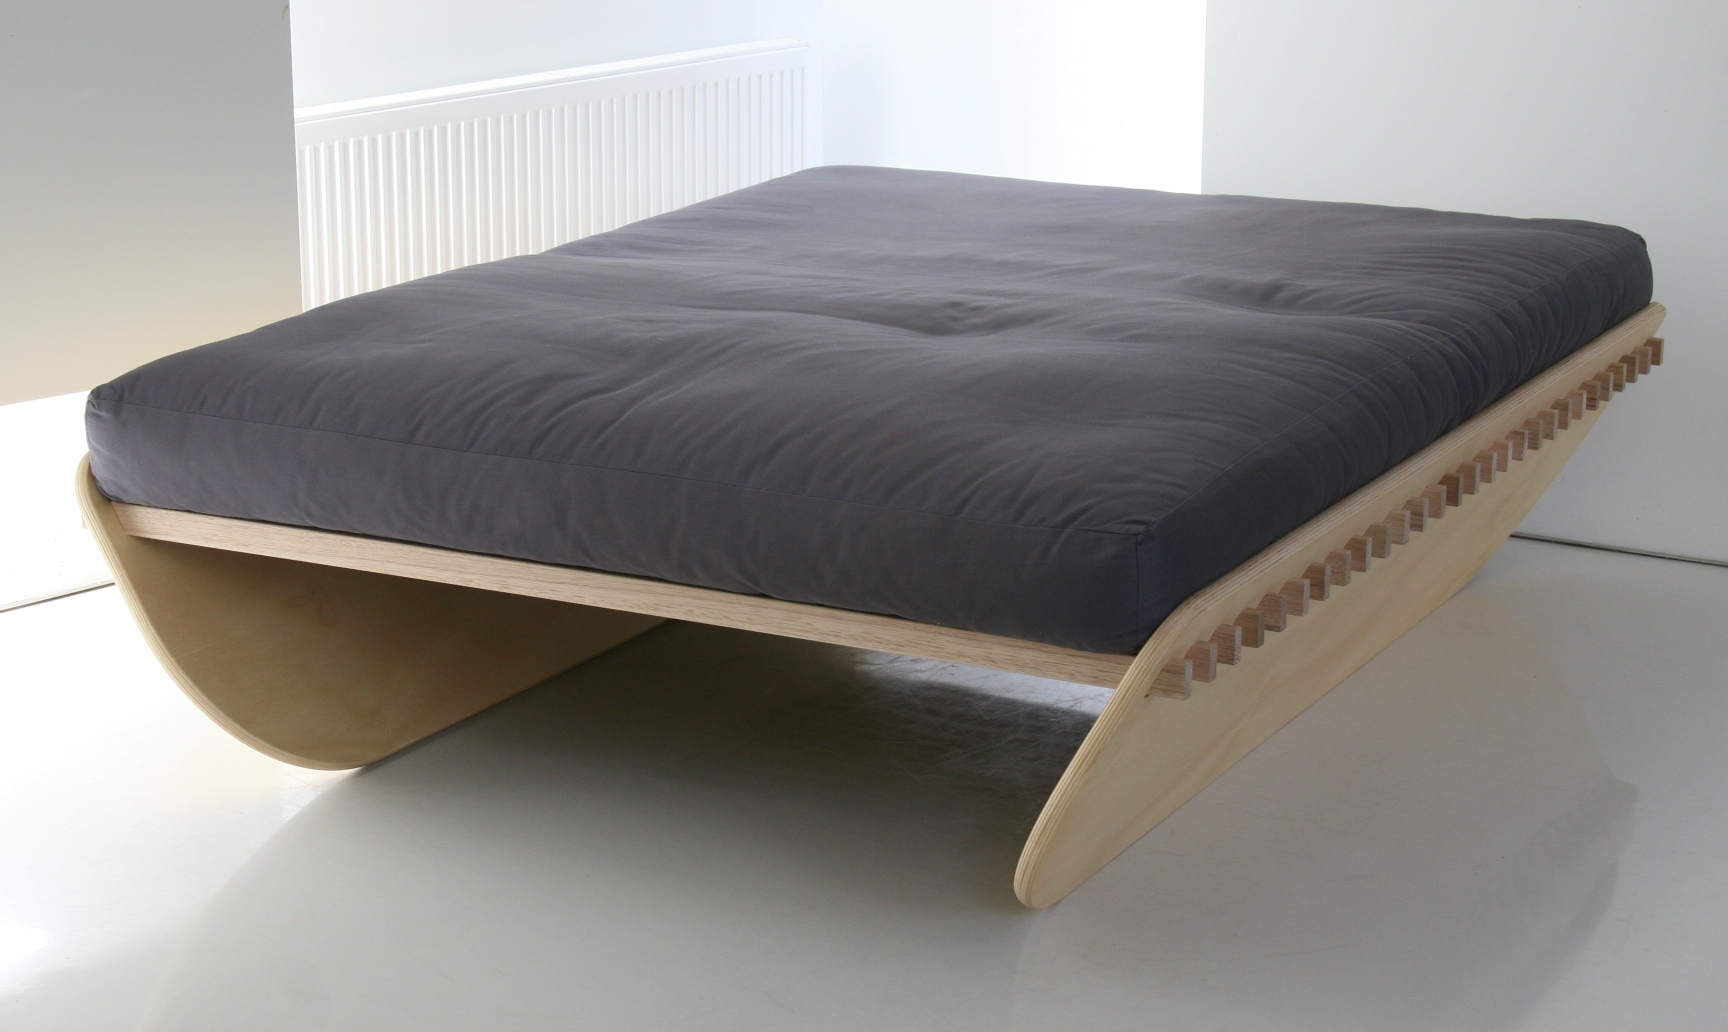 How to assemble a bed